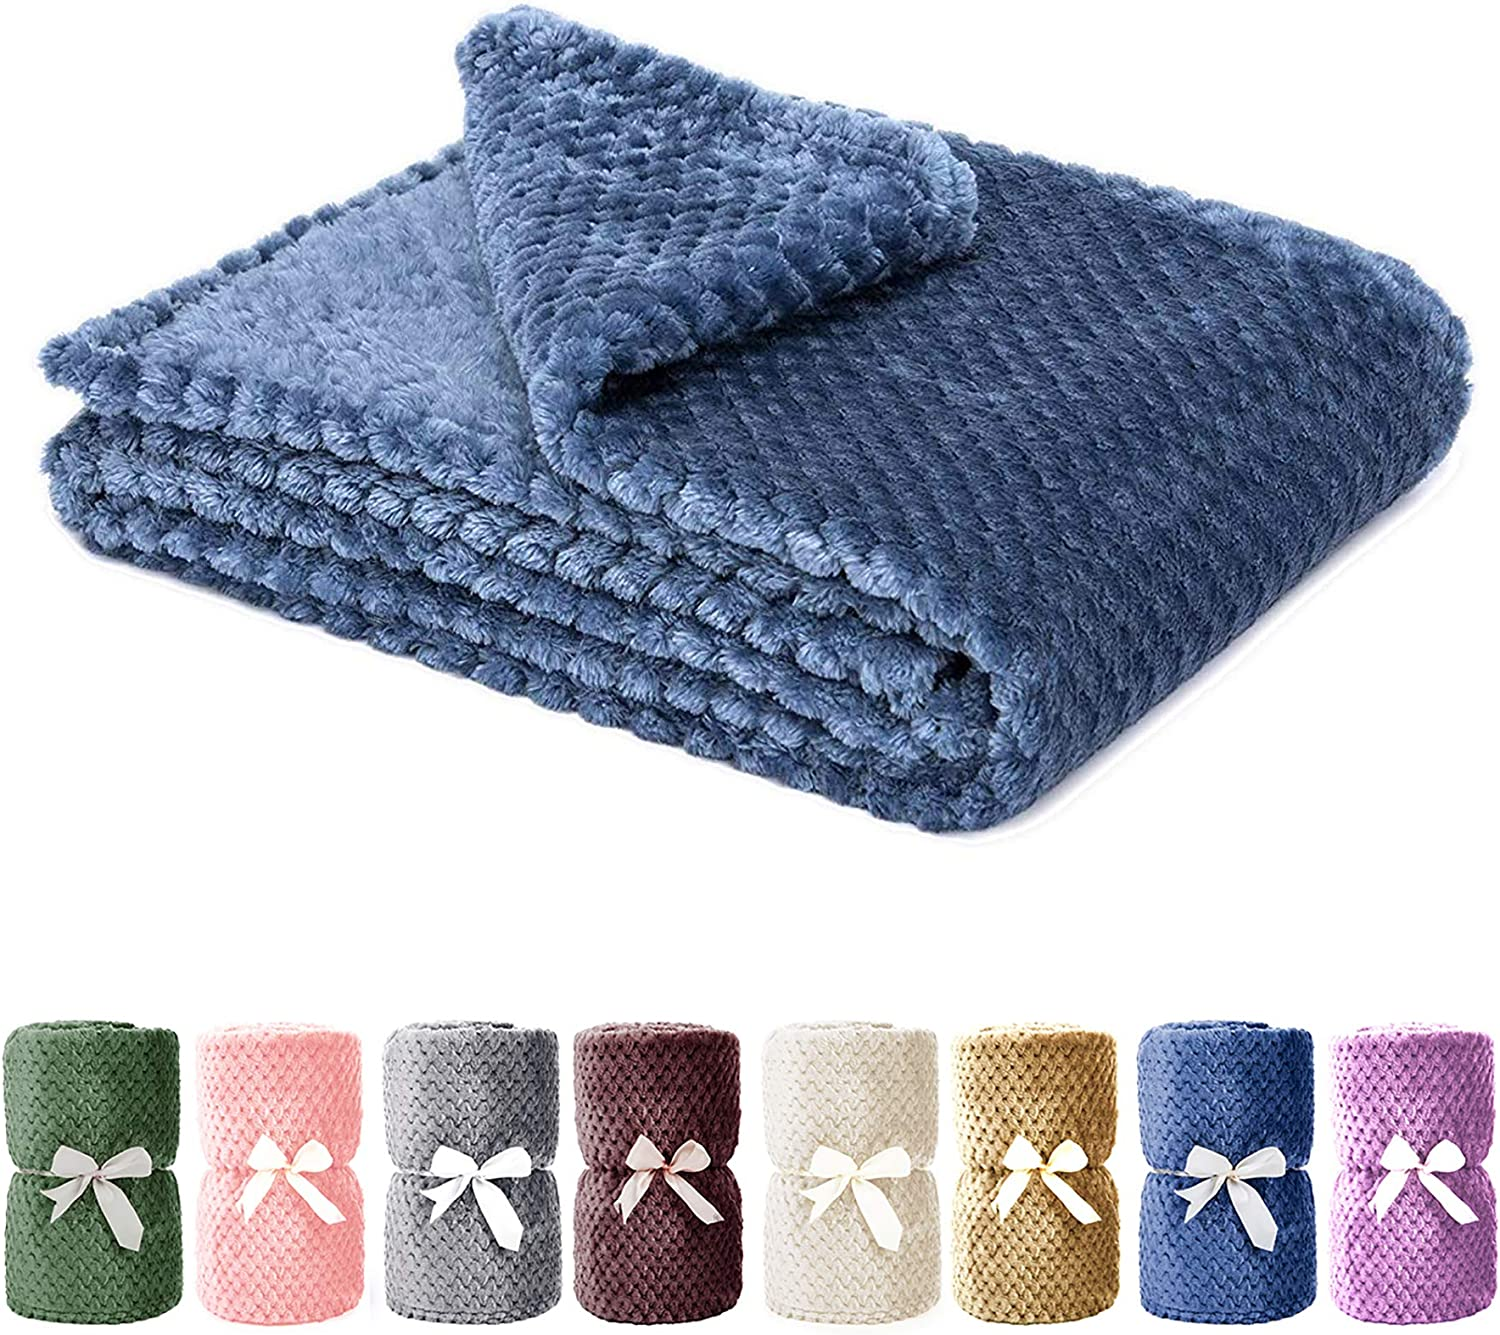 Dog Blanket,Soft Fuzzy Blankets for Puppy, Small,Medium,Large,X-Large Premium Fluffy Blankets Plush Fleece Throw Dog Bed, Couch, Sofa, Reversible Travel Warm Covers : Pet Supplies